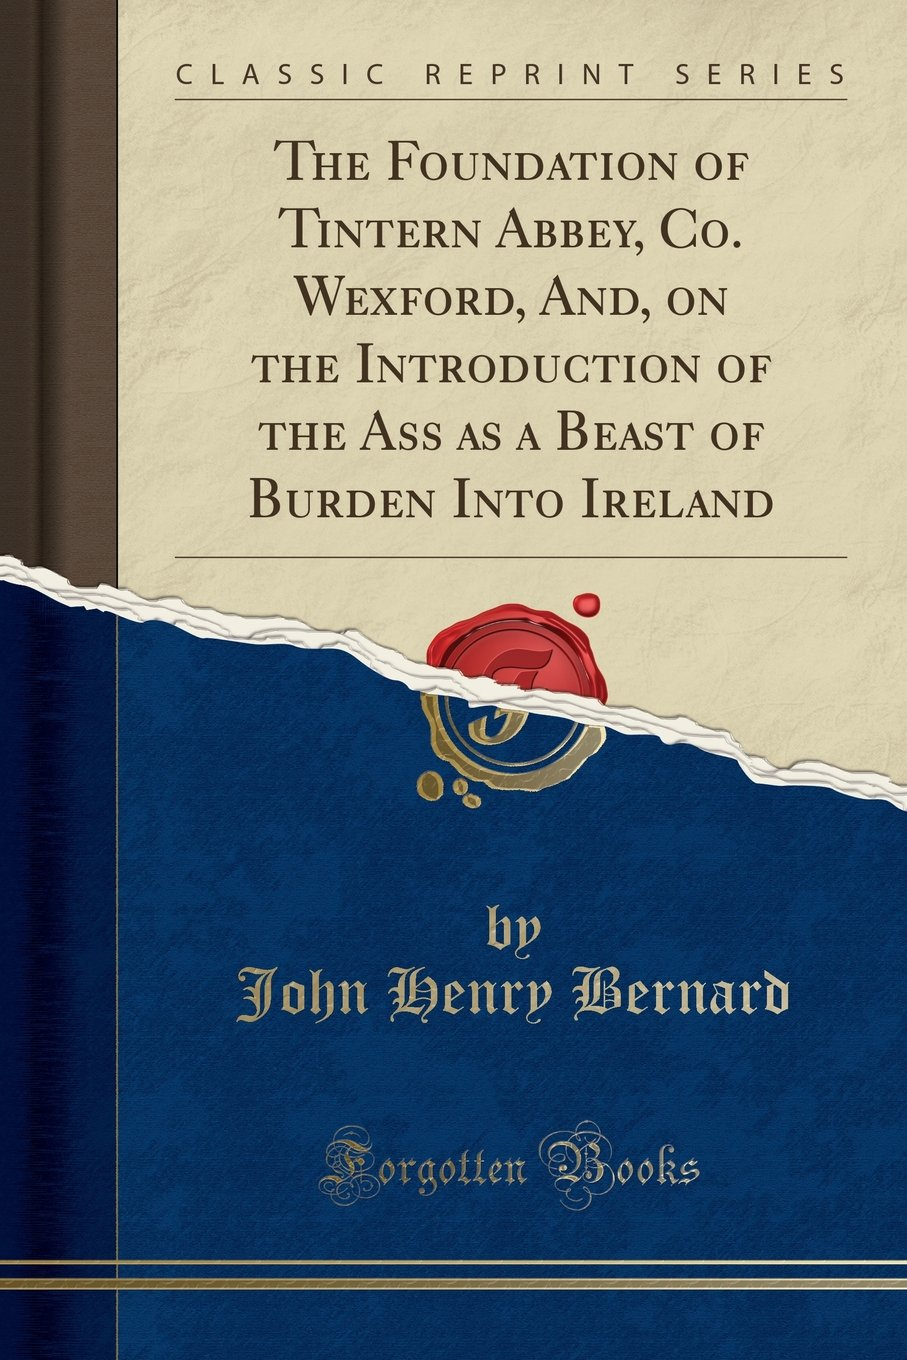 Read Online The Foundation of Tintern Abbey, Co. Wexford, And, on the Introduction of the Ass as a Beast of Burden Into Ireland (Classic Reprint) pdf epub